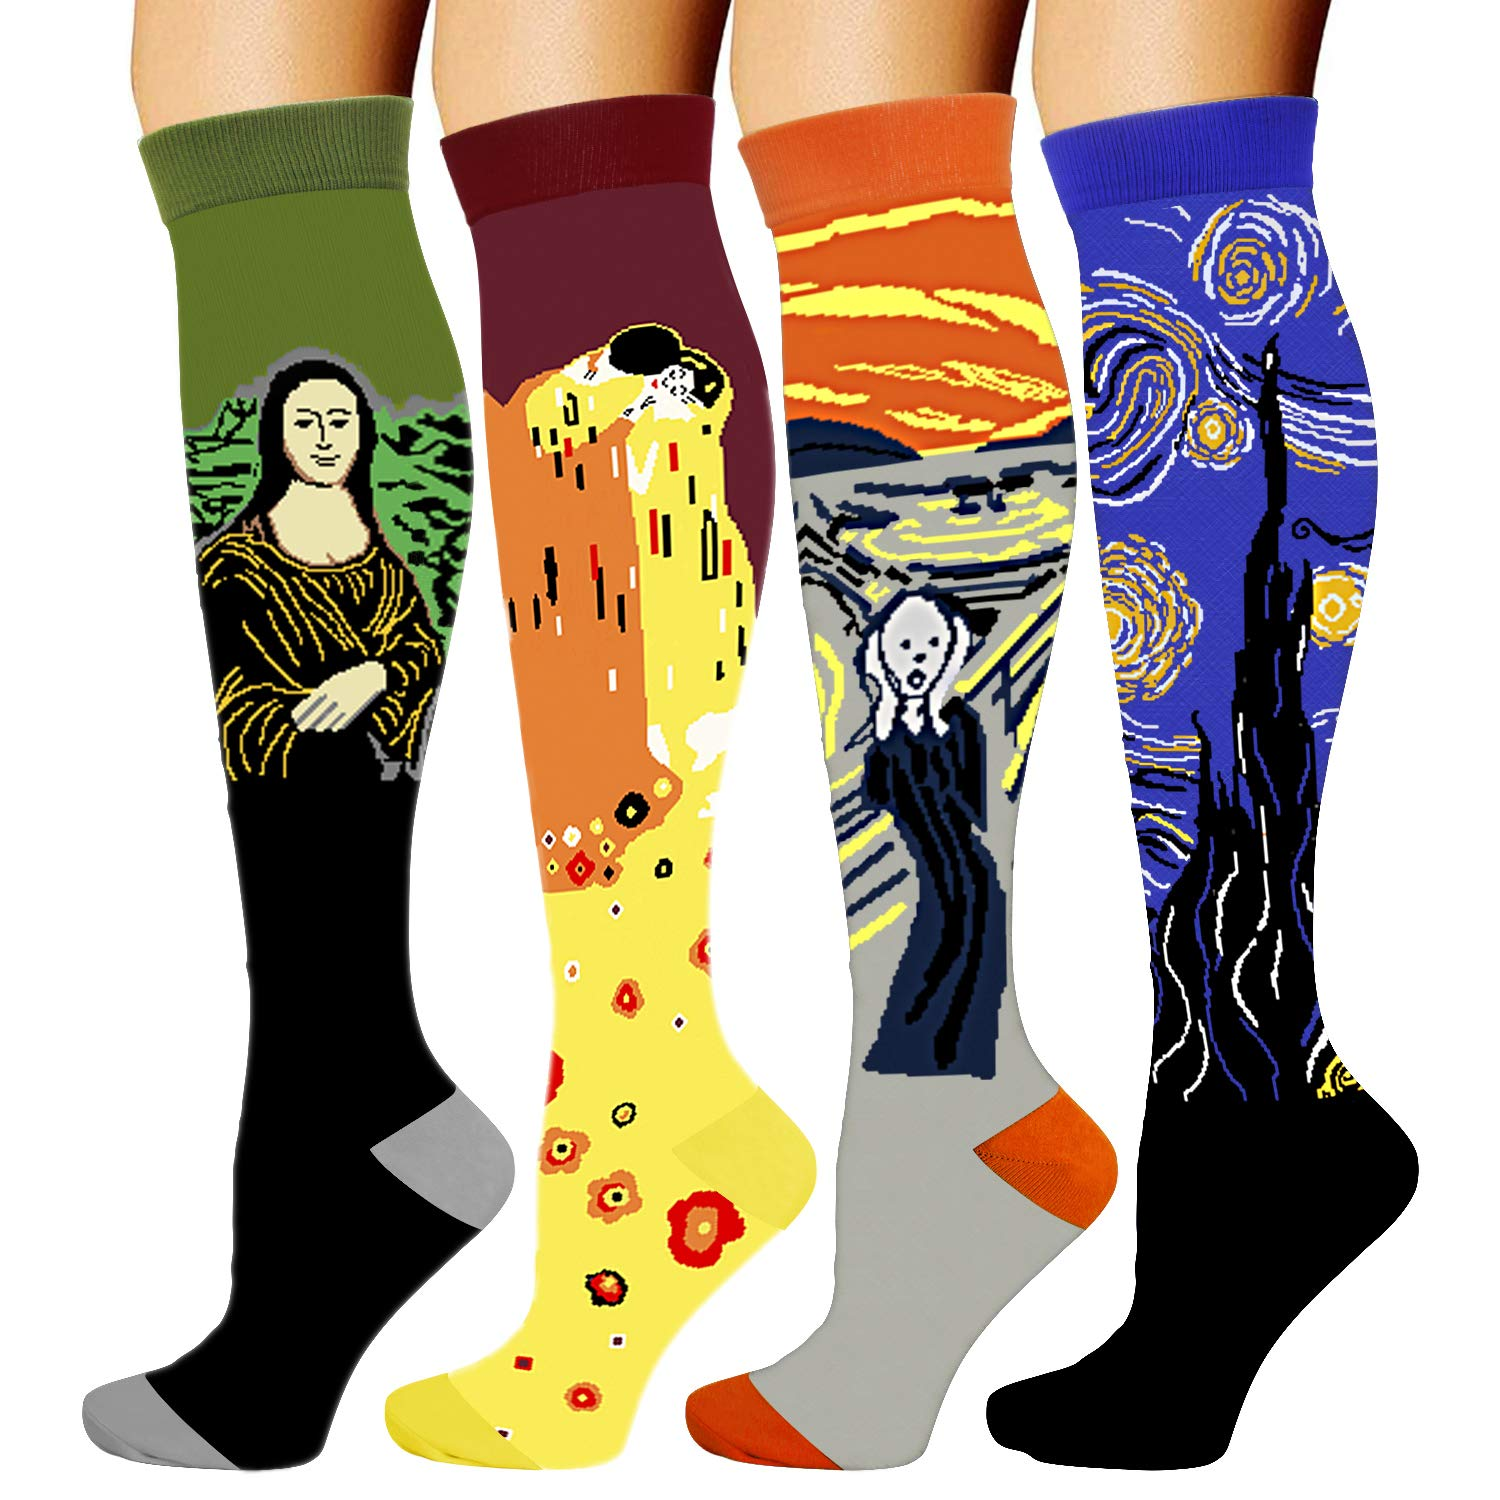 4 Pairs Compression Socks for Women Men 20-30 mmHg is Best Graduated Athletic Running Flight Travel Nurses (Famous Painting, Large/X-Large)